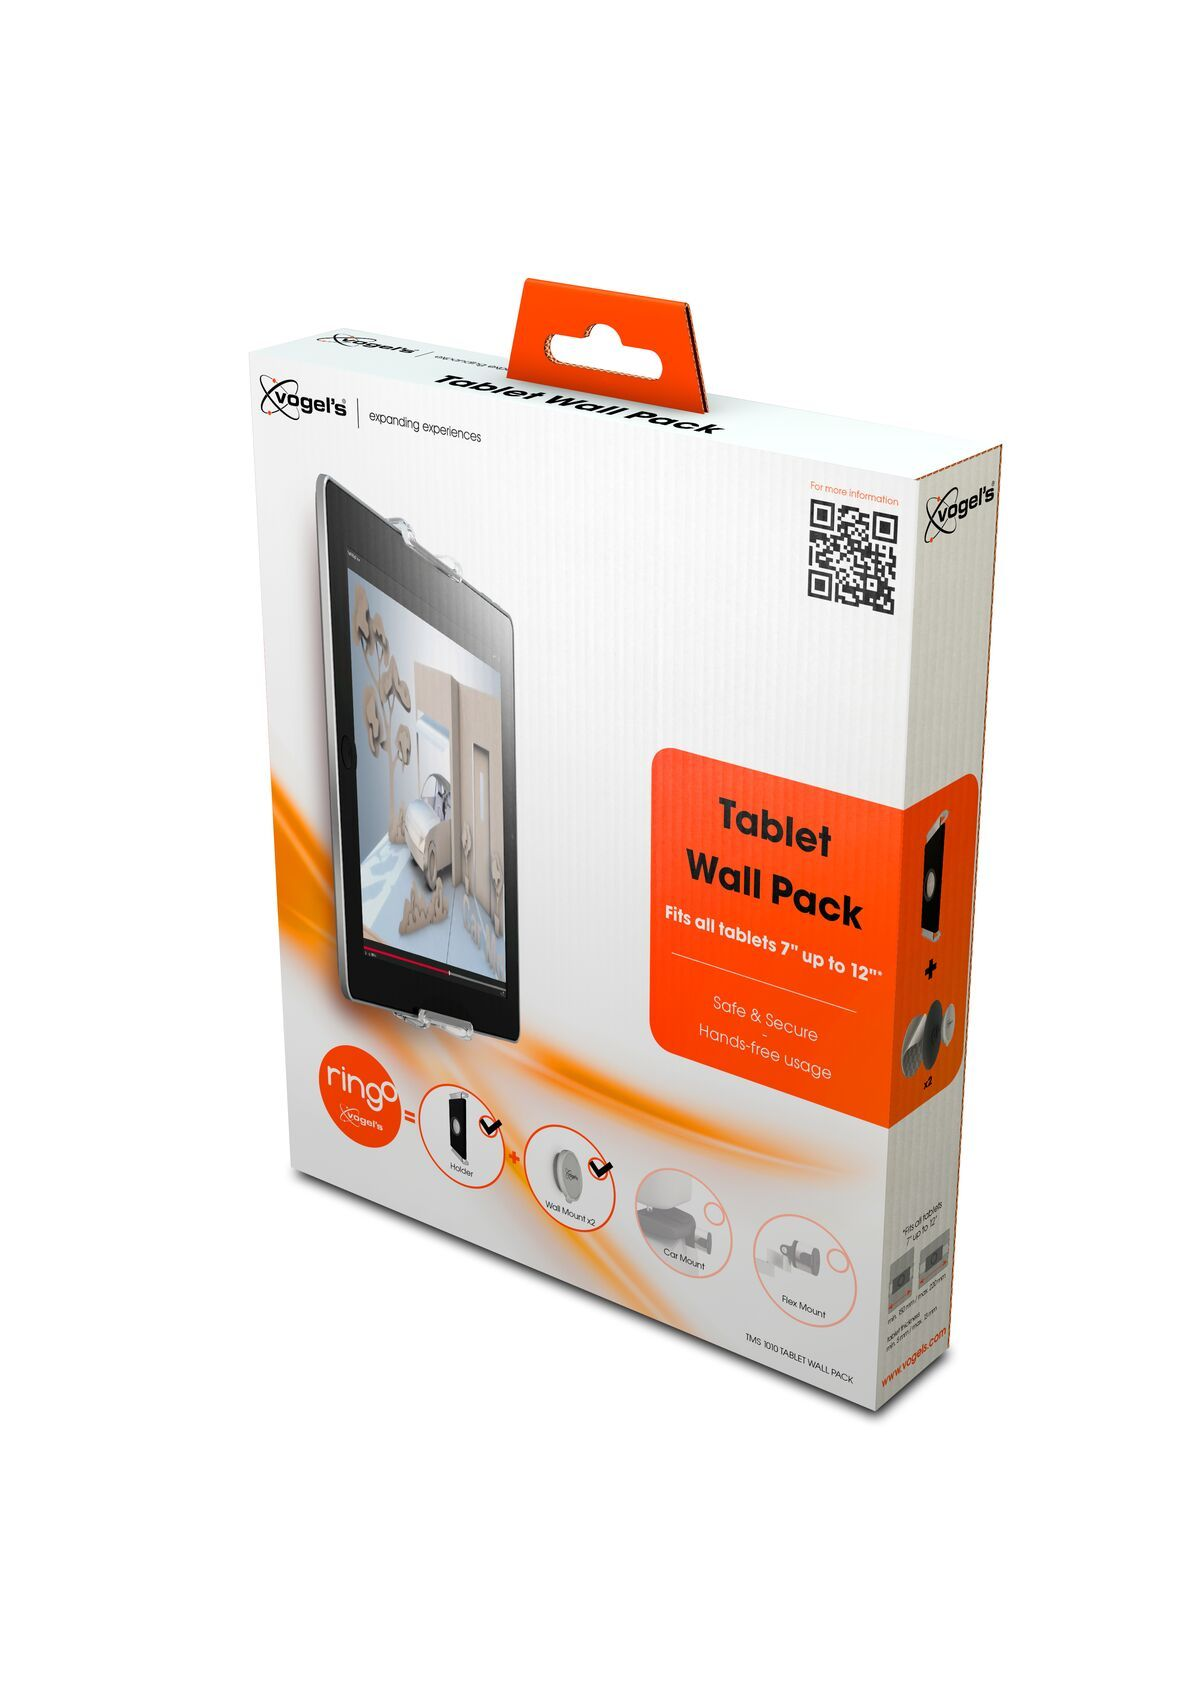 Vogel's TMS 1010 Tablet Wall Pack - Pack shot 3D